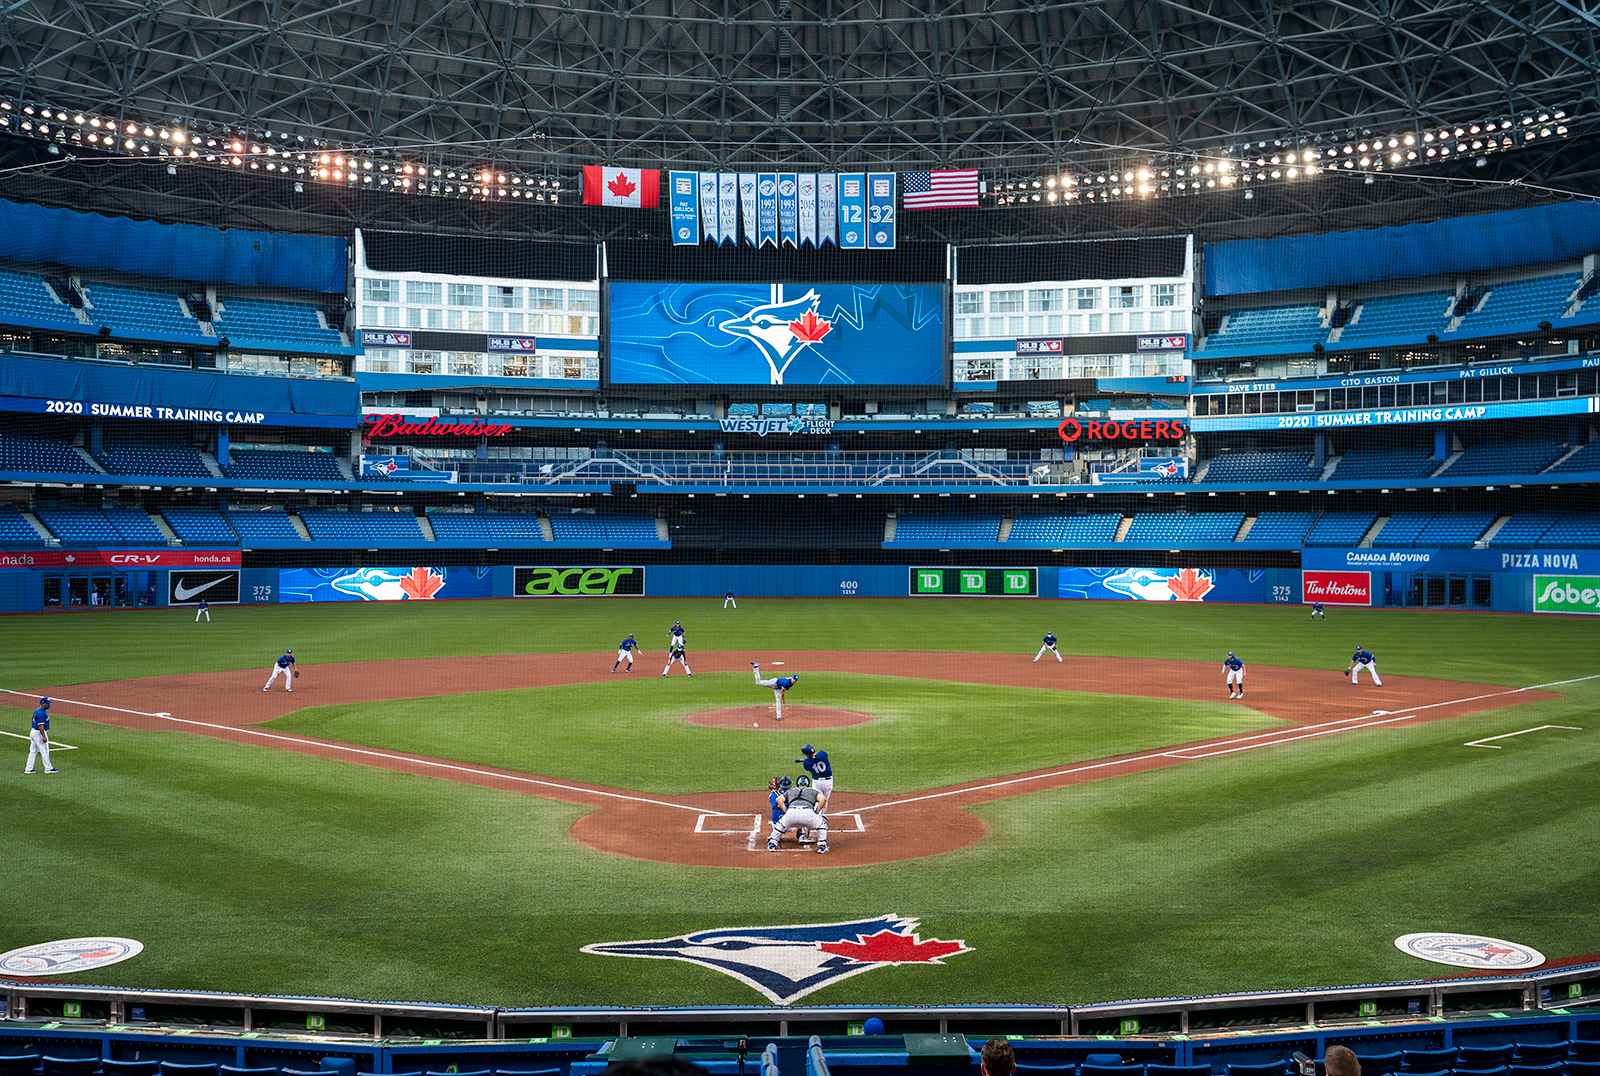 The Toronto Blue Jays play an intrasquad game at Rogers Centre in Toronto on July 9.